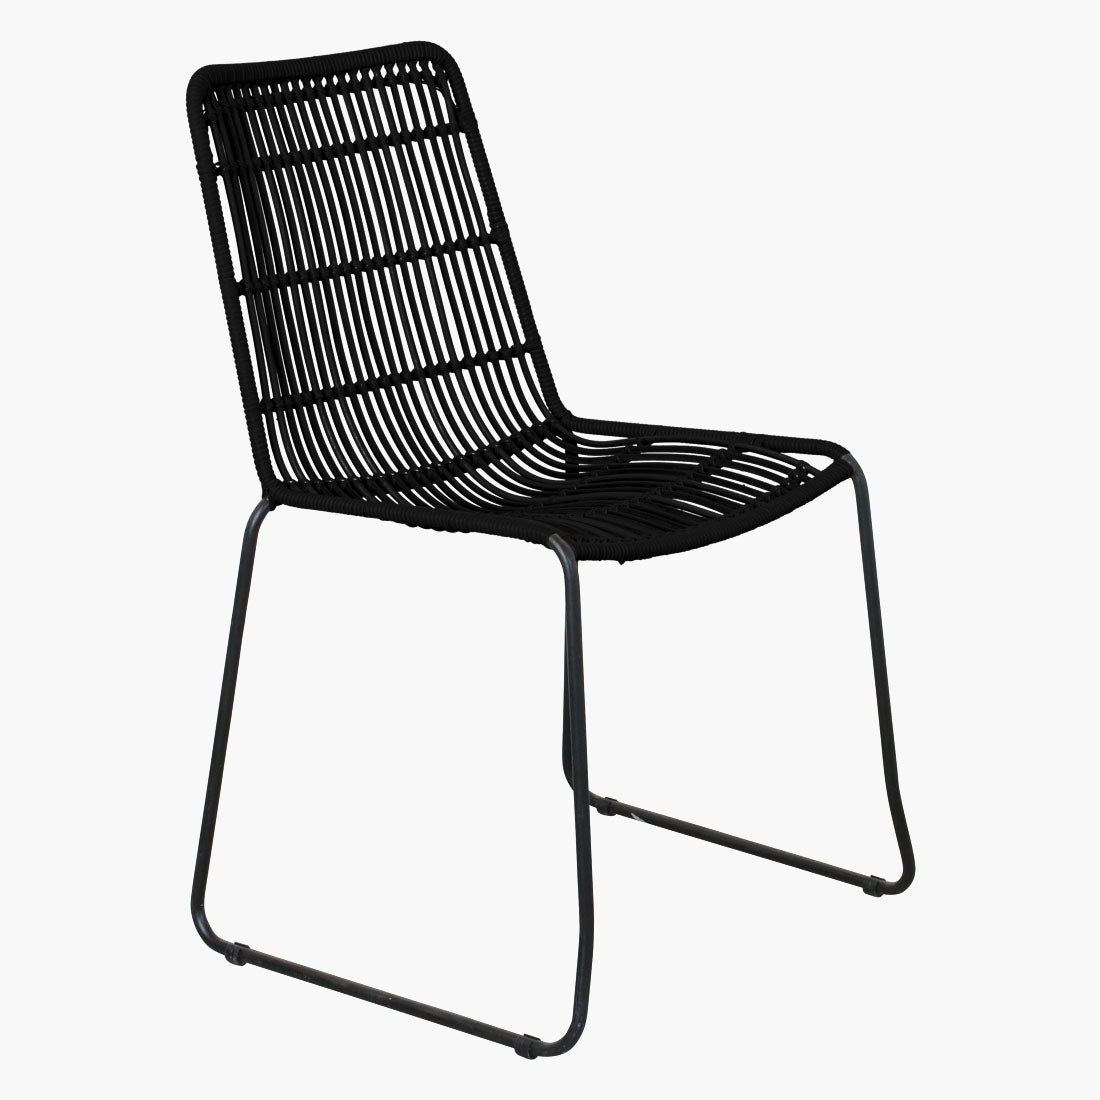 Jane slim outdoor chair black